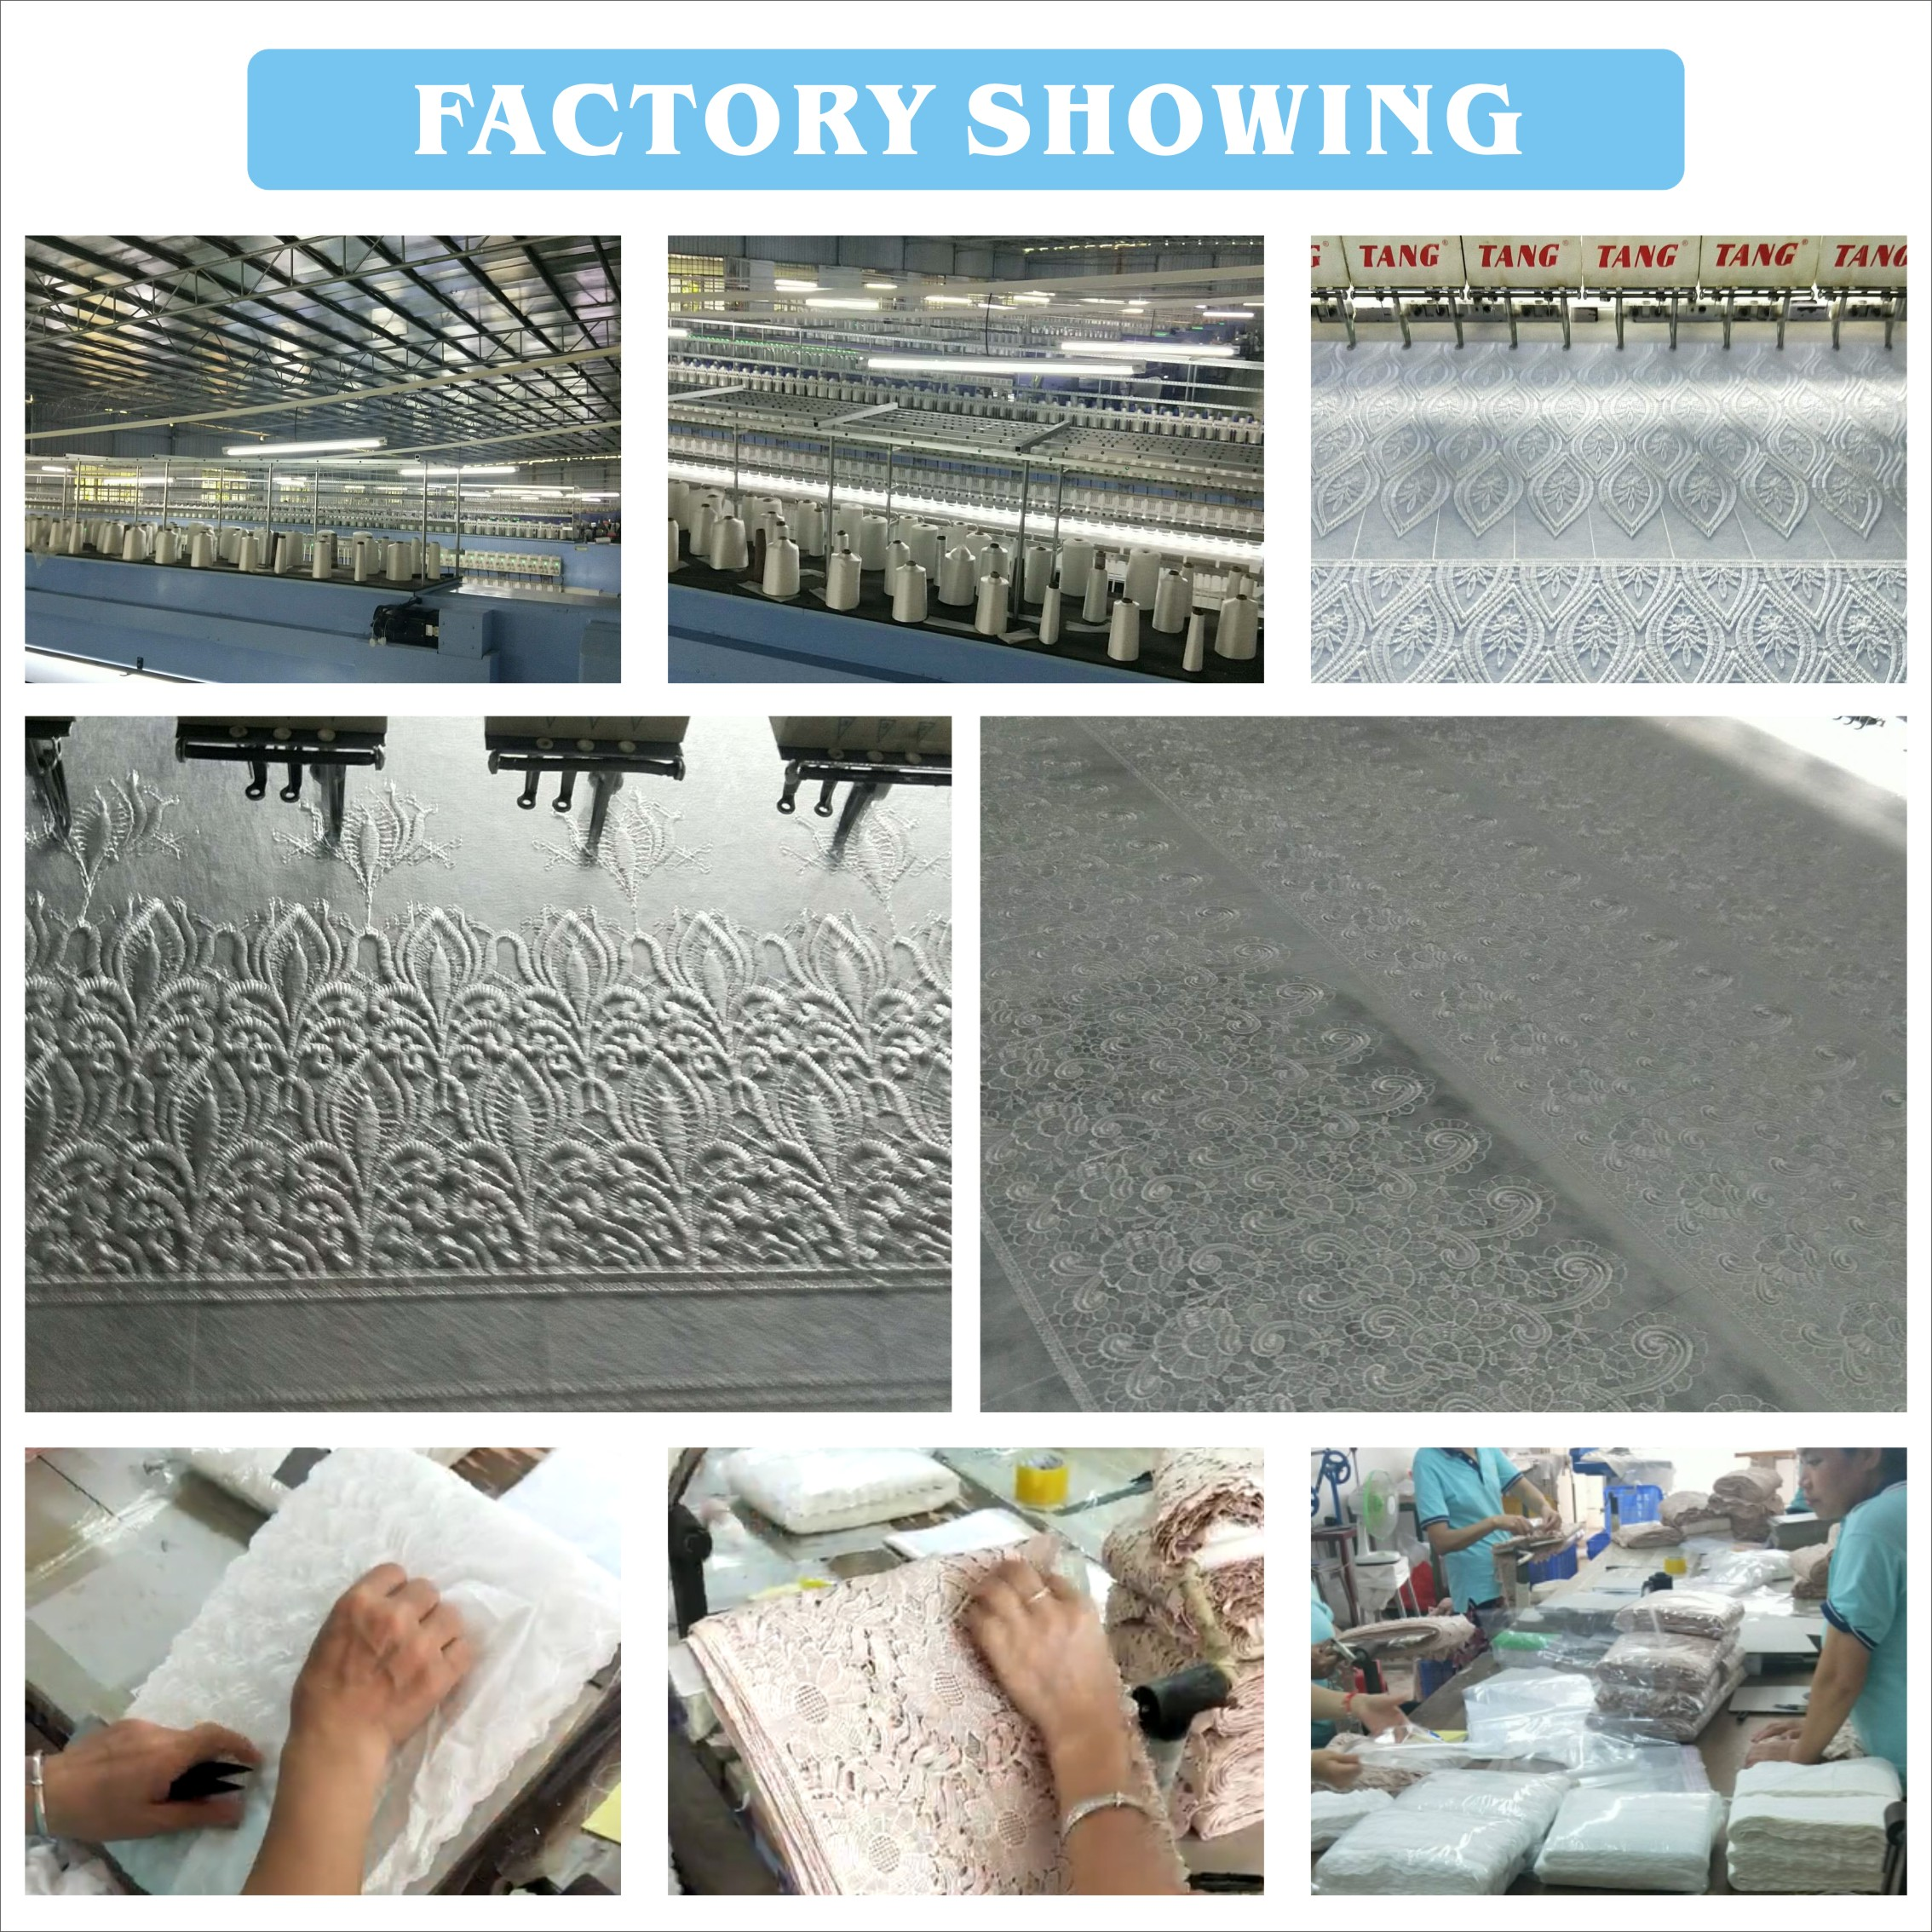 FACTORY SHOWING